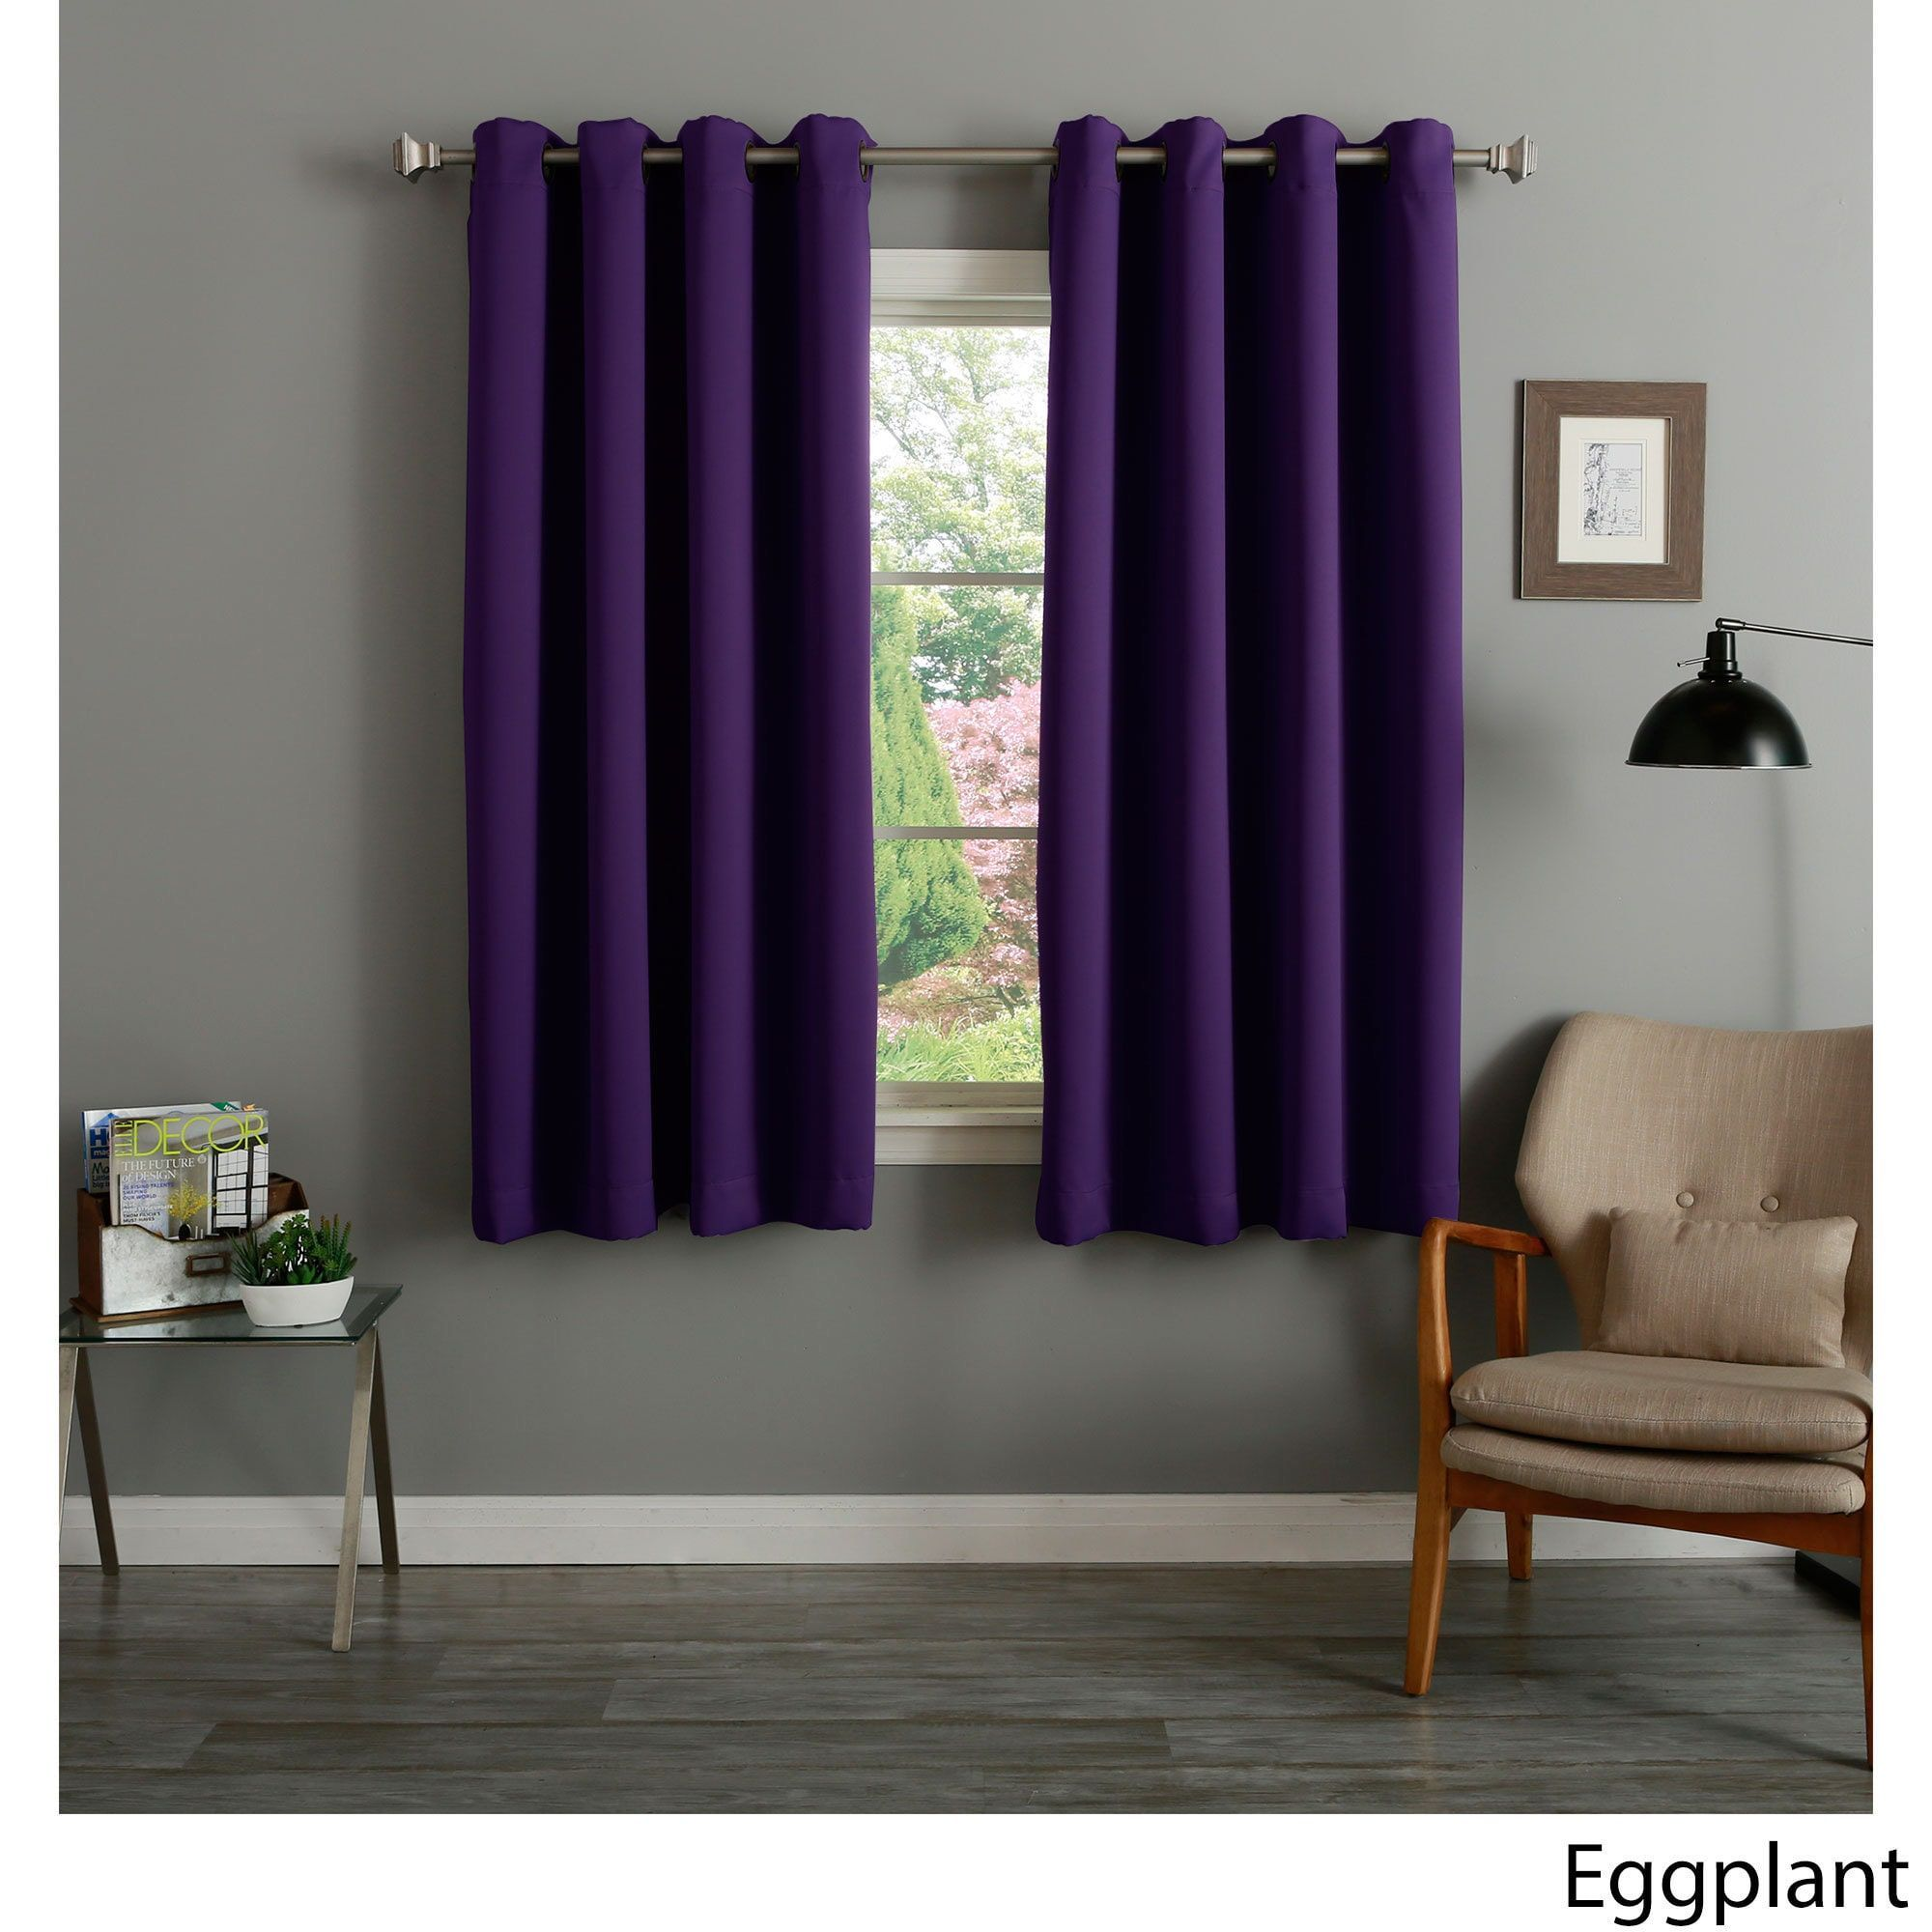 extra purple drapes curtainmodels or pin curtain models wide in curtains